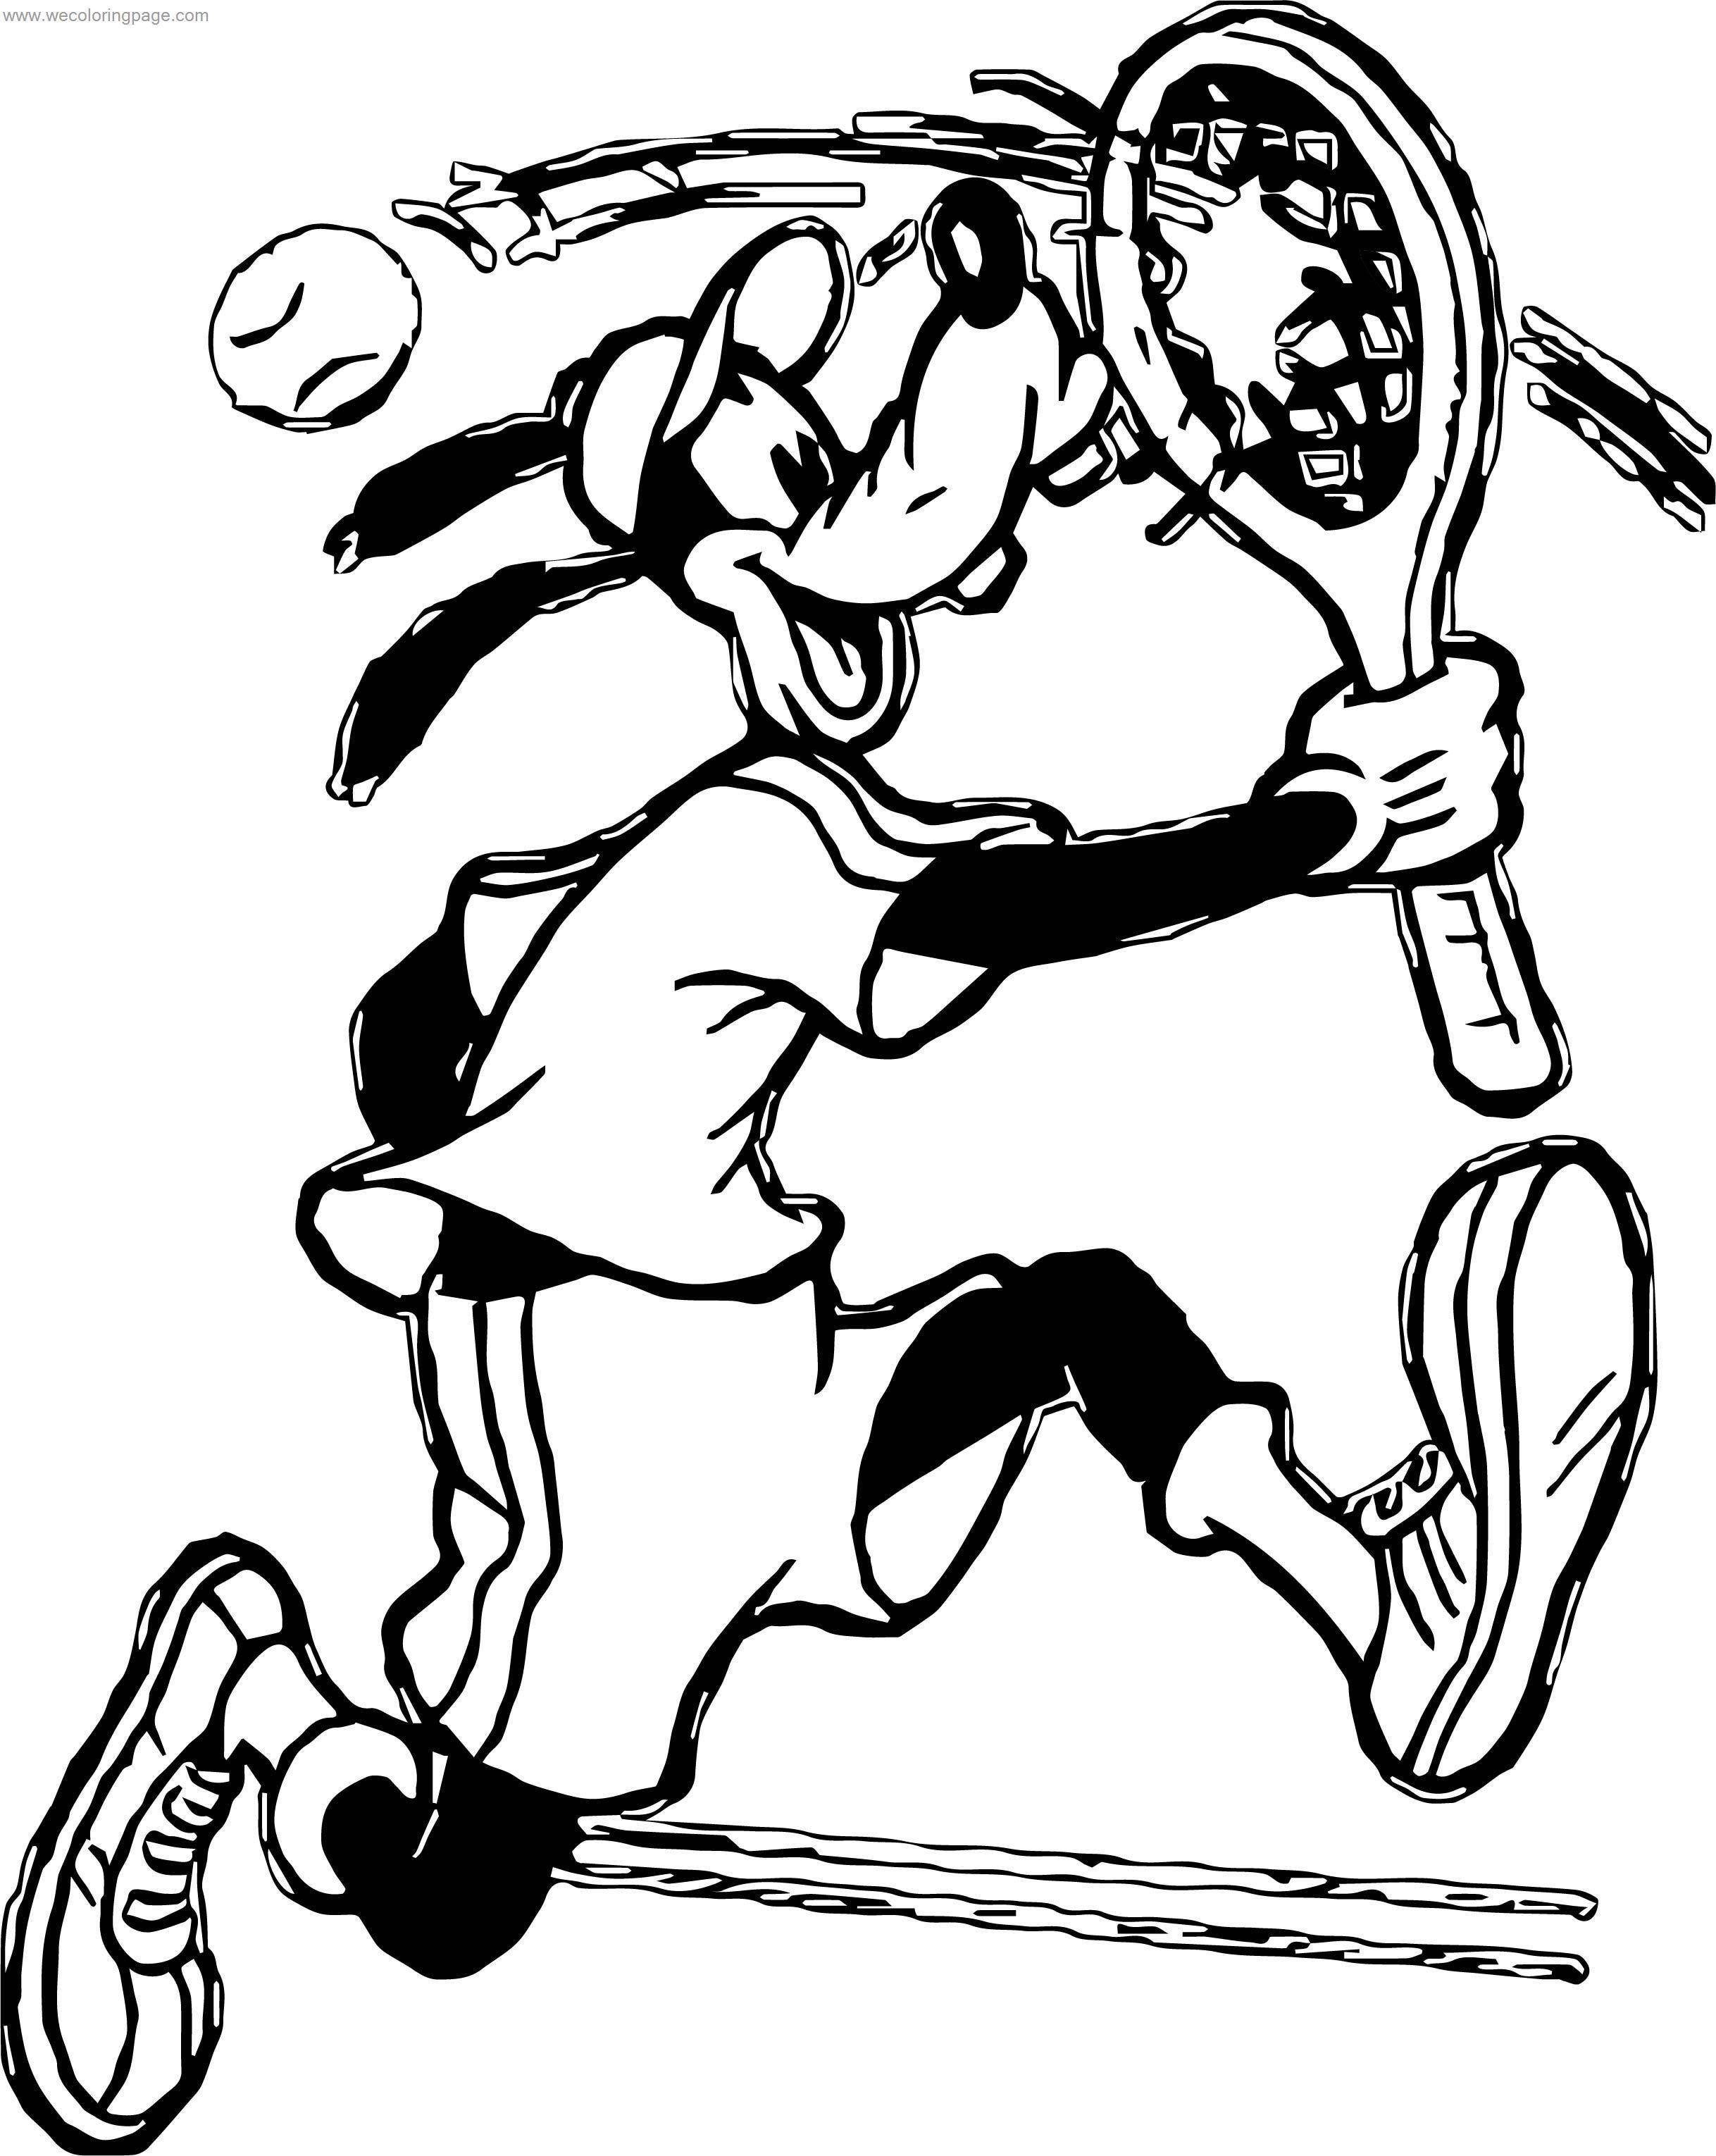 Goofy Tennis Coloring Page